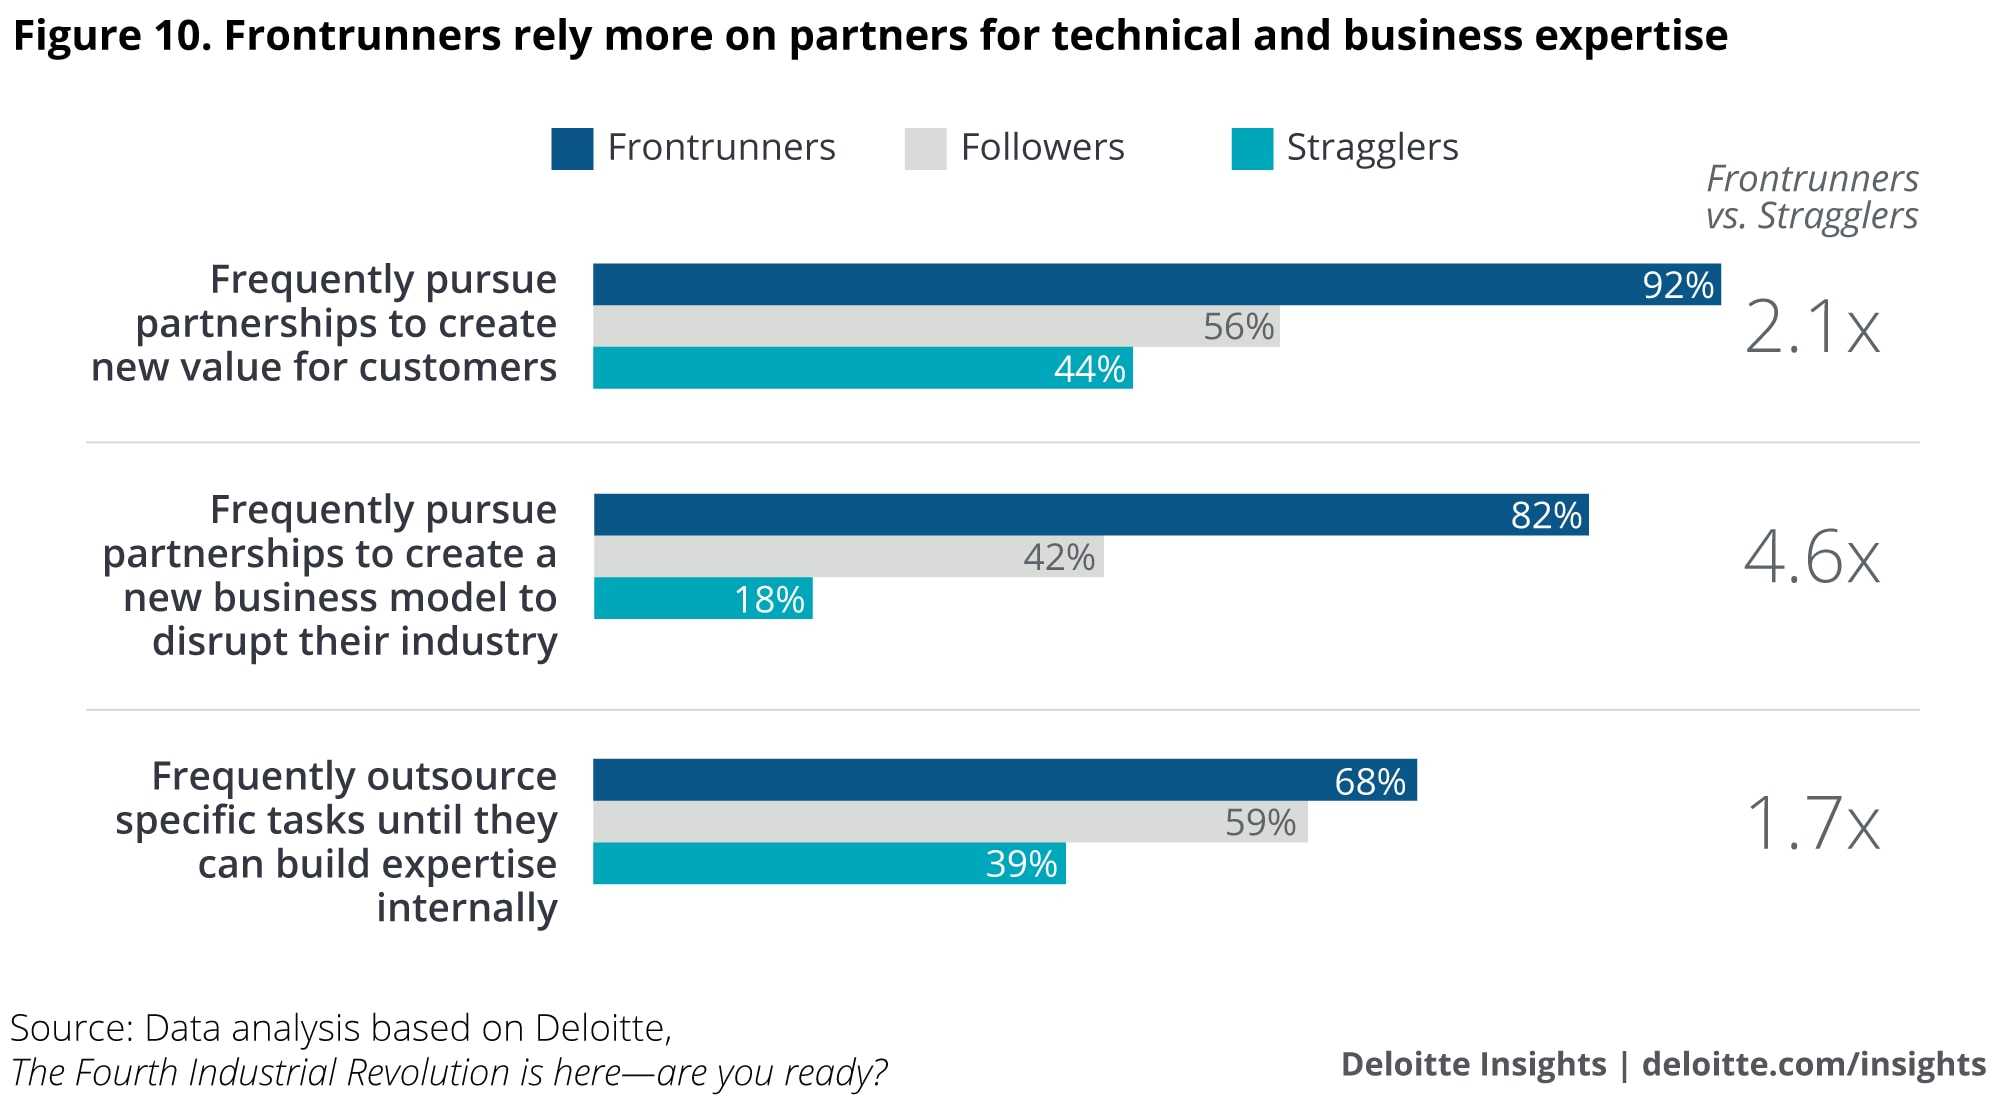 Frontrunners rely more on partners for technical and business expertise